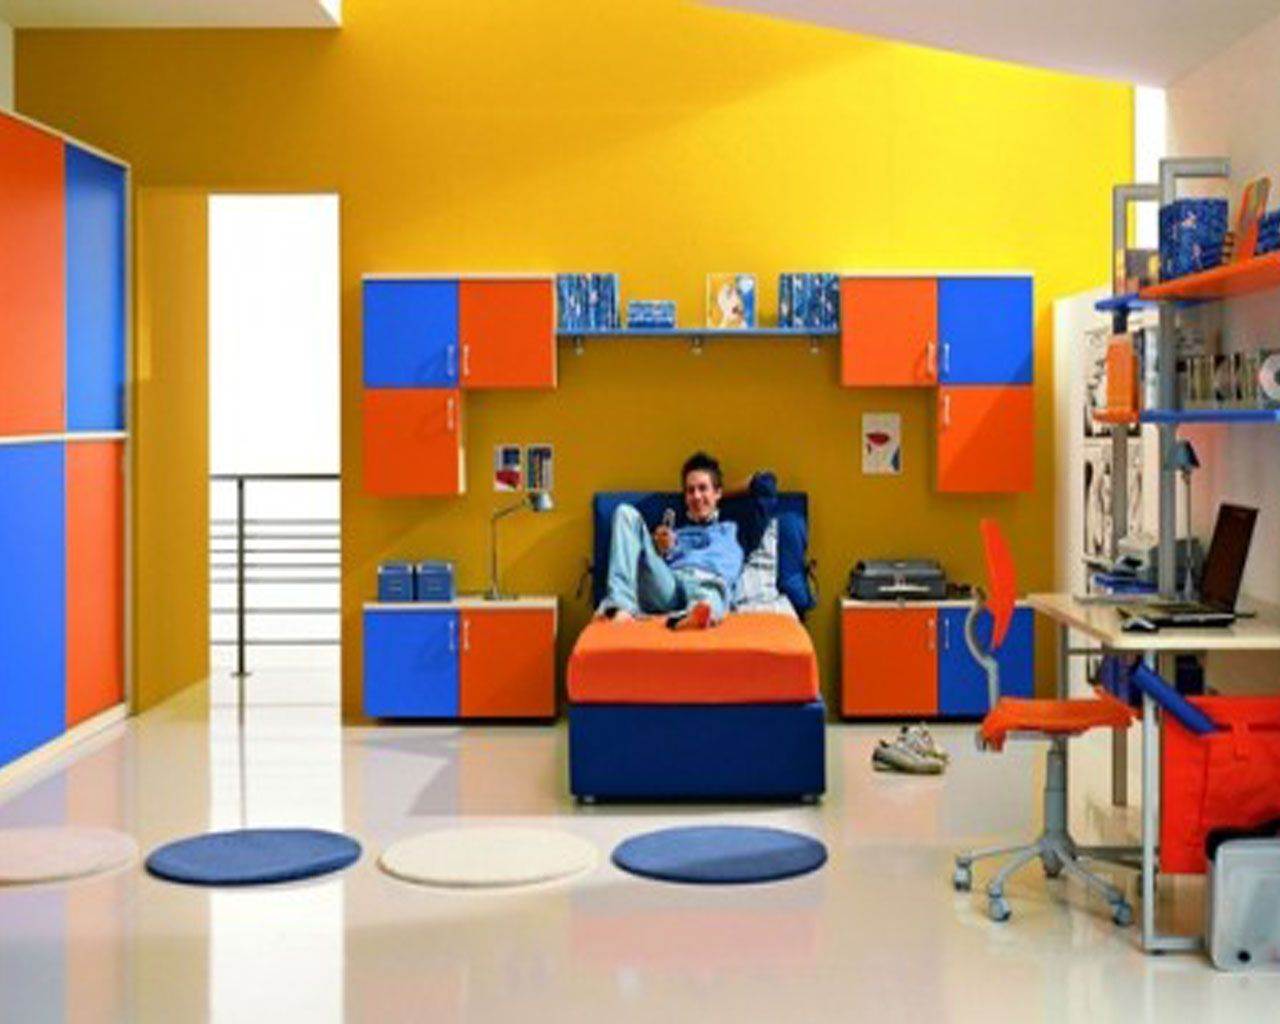 Bedroom paint designs for men - Boys Bedroom Idea With Yellow Wall Paint Color And Orange Blue Cabinets And